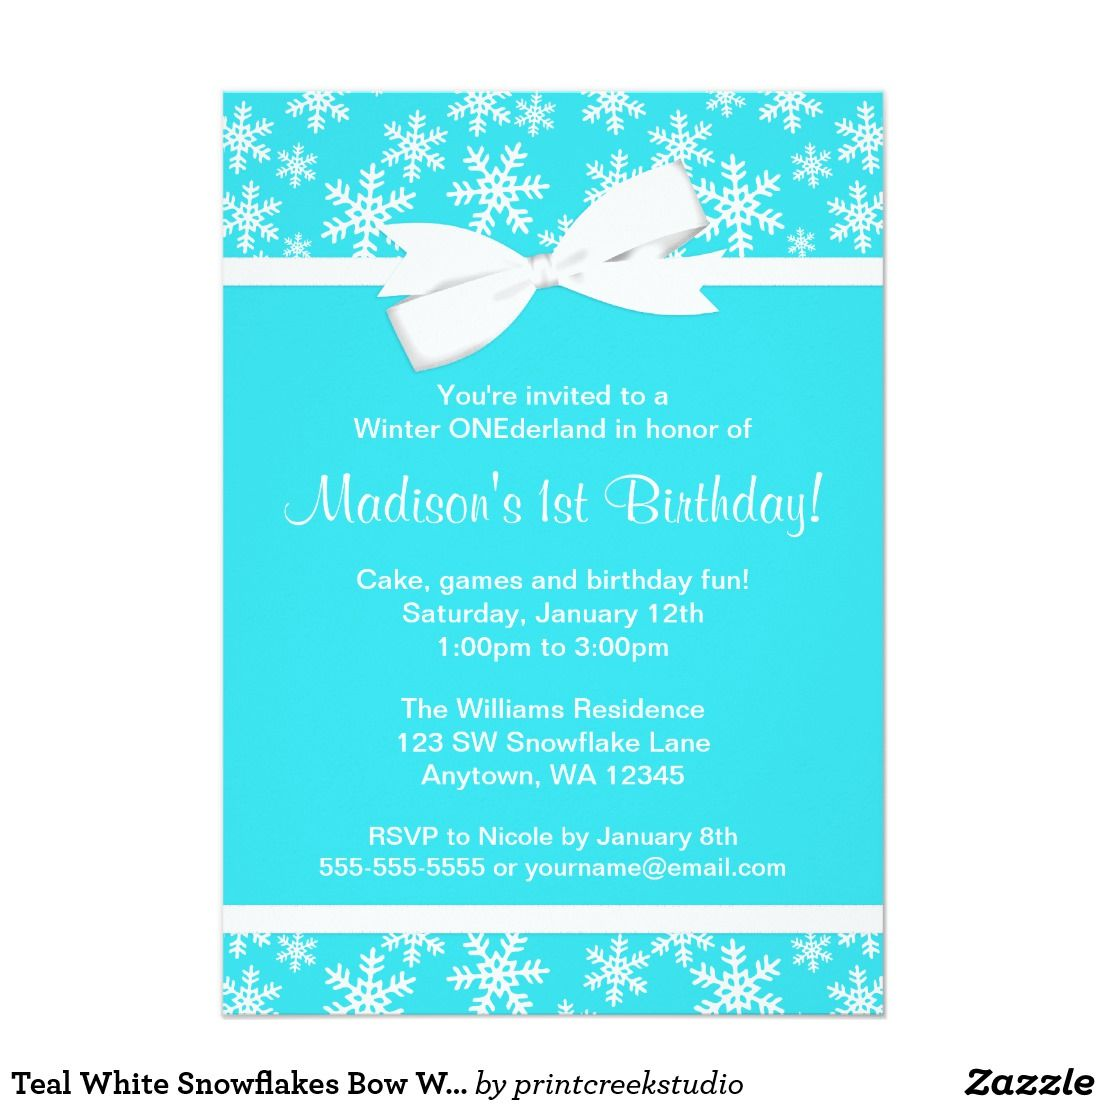 Teal White Snowflakes Bow Winter ONEderland Card | Winter onederland ...